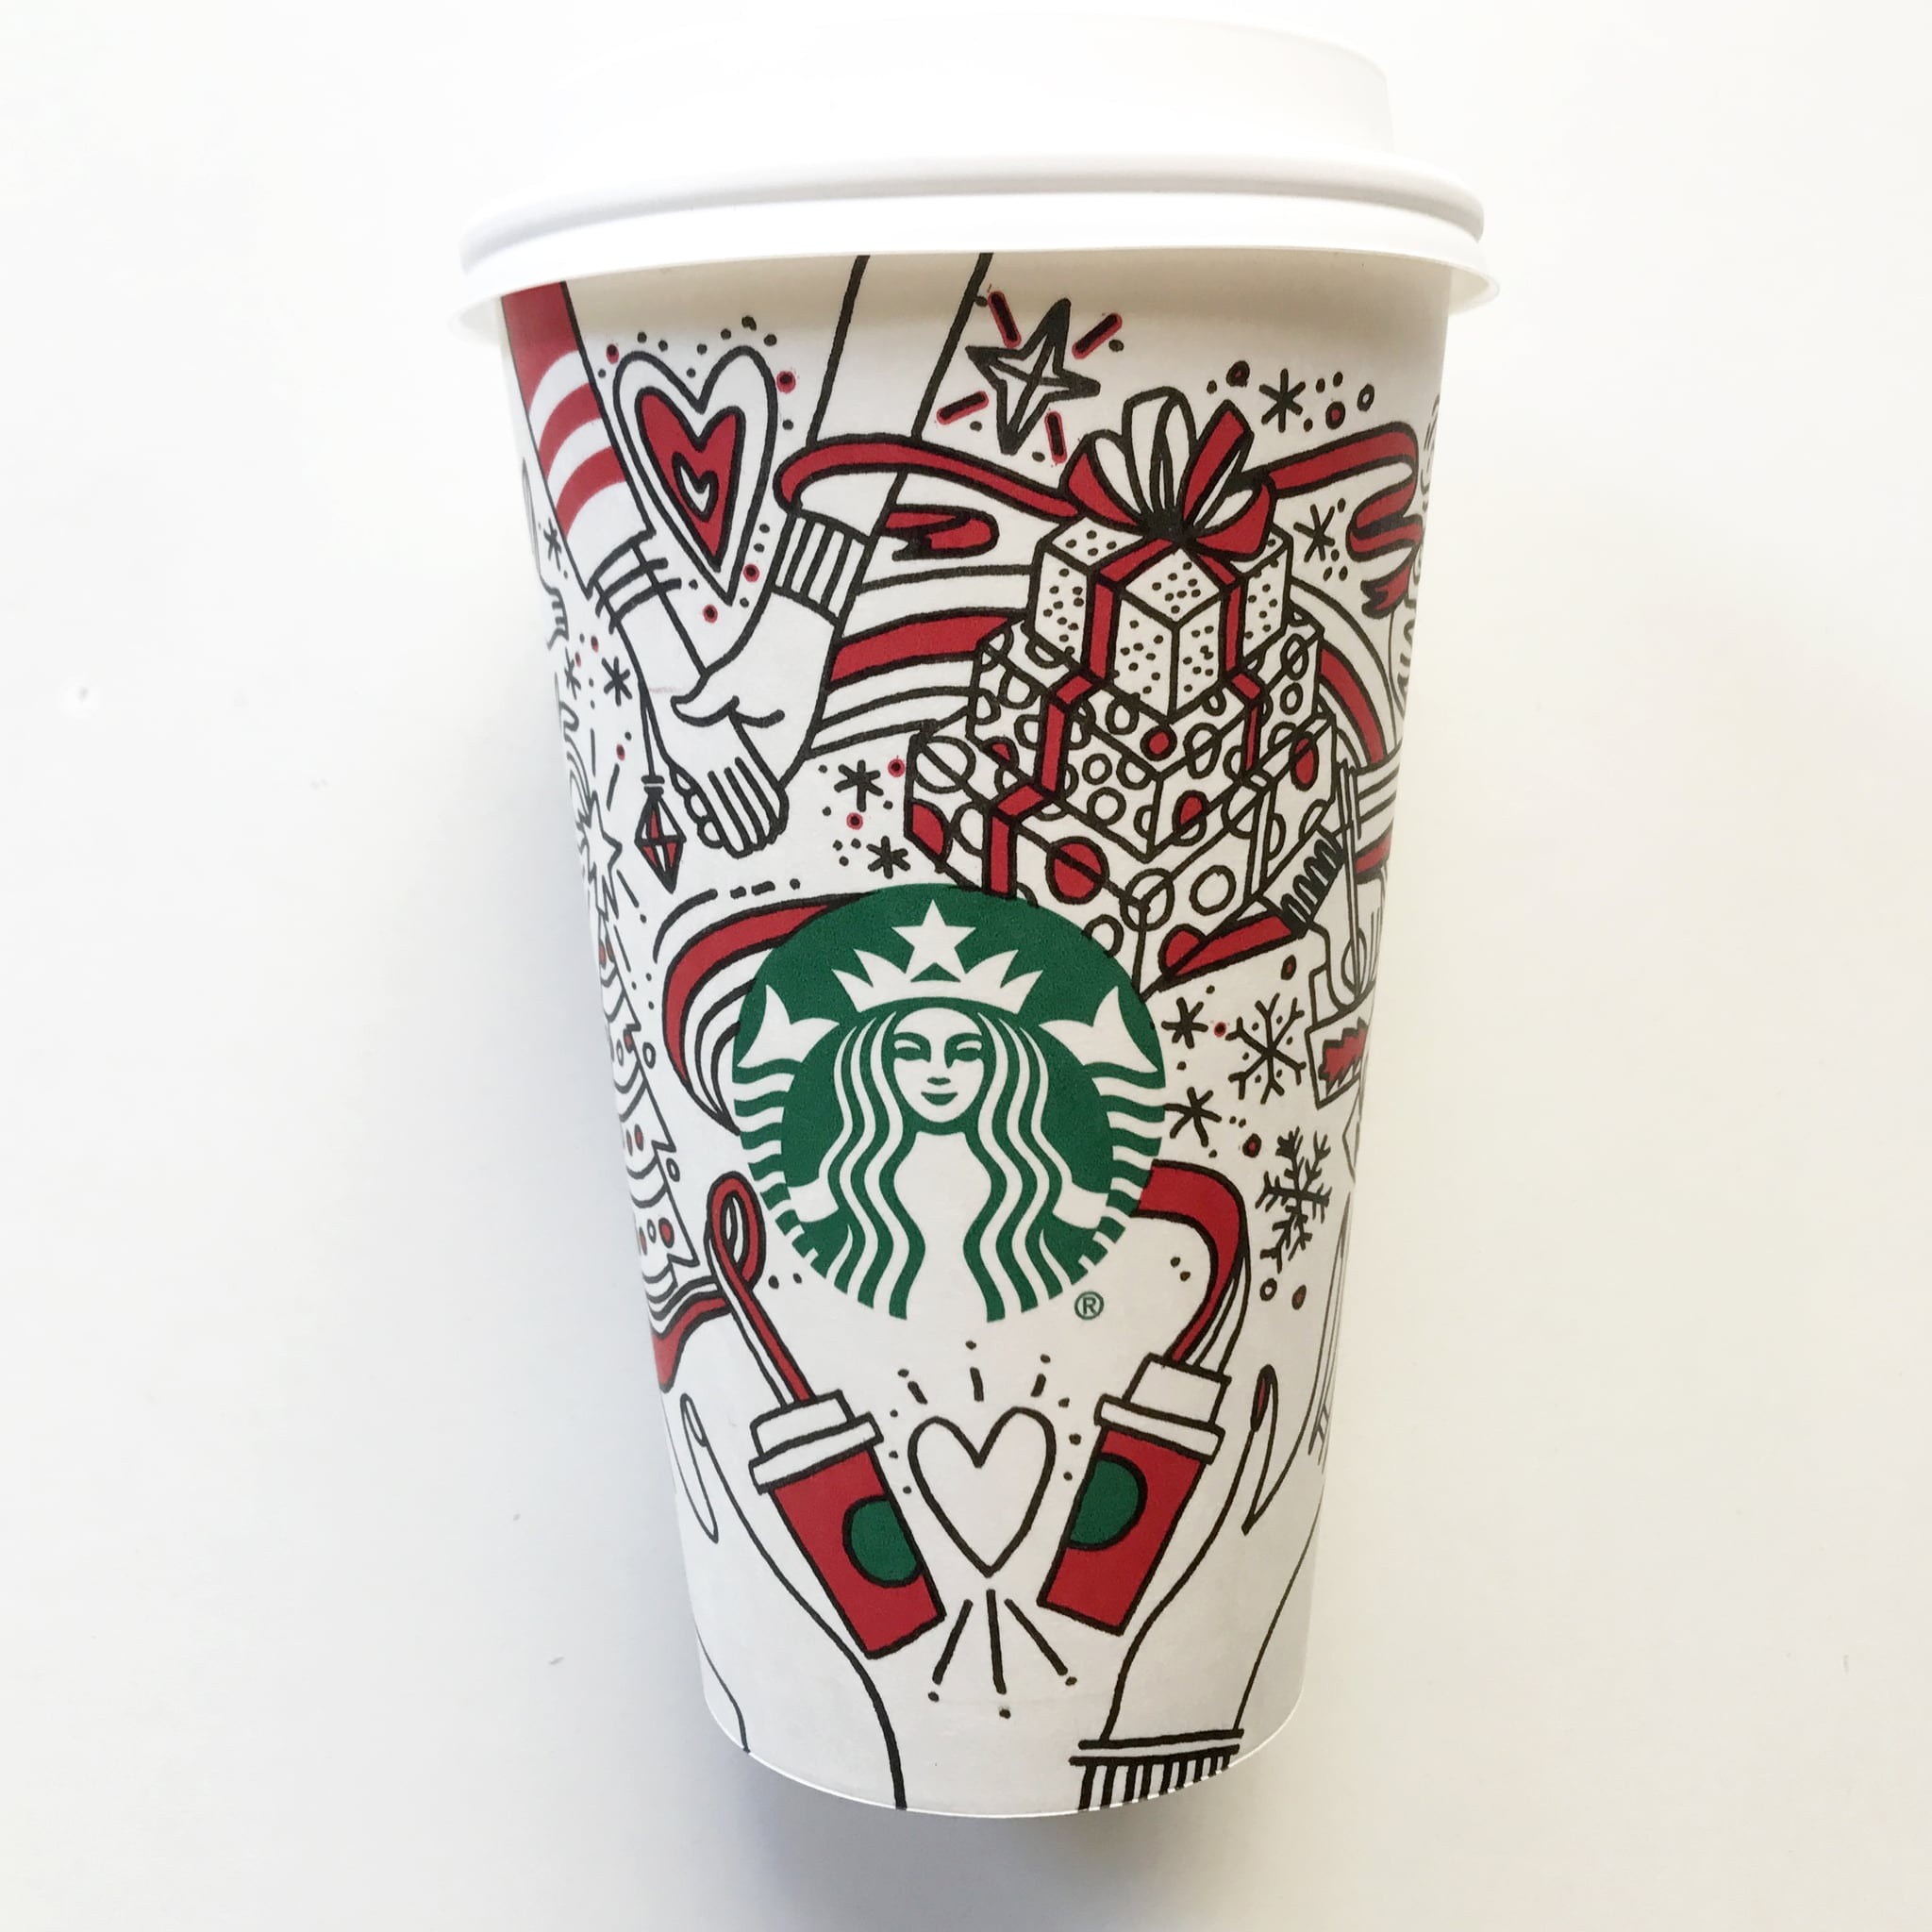 Starbucks' new holiday cups are DIY-style